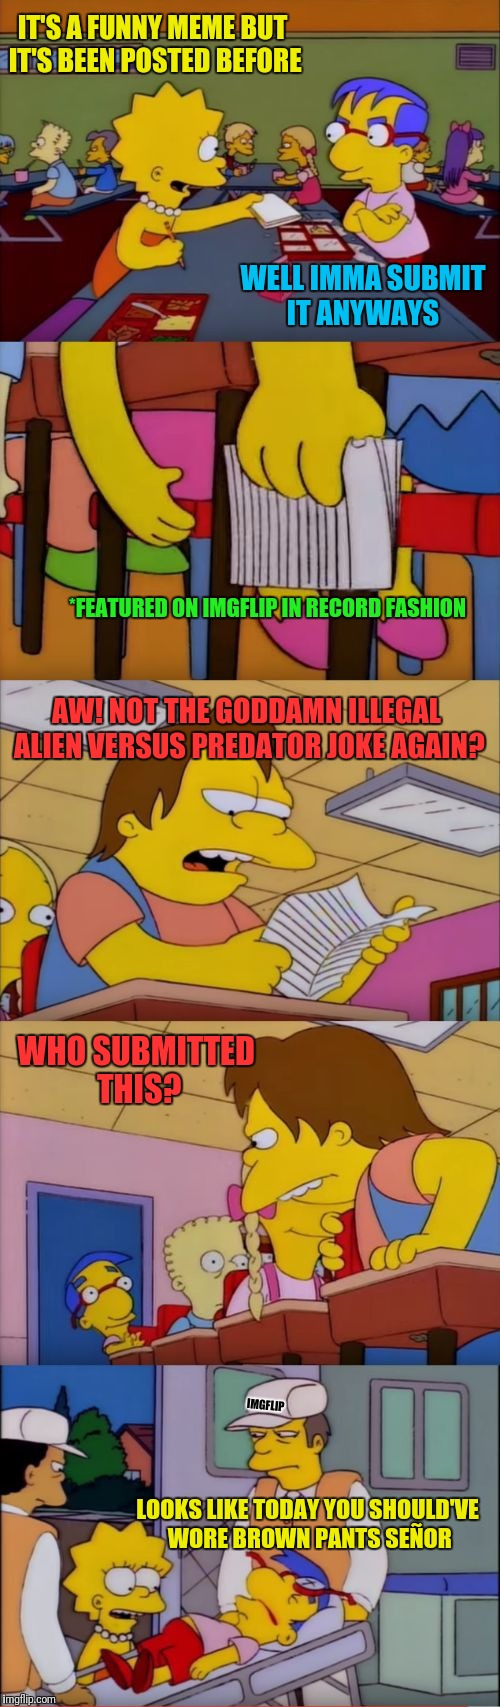 repost tired memes  | IT'S A FUNNY MEME BUT IT'S BEEN POSTED BEFORE WELL IMMA SUBMIT IT ANYWAYS *FEATURED ON IMGFLIP IN RECORD FASHION AW! NOT THE GO***MN ILLEGAL | image tagged in guess who likes you note nelson milhouse lisa simpsons | made w/ Imgflip meme maker